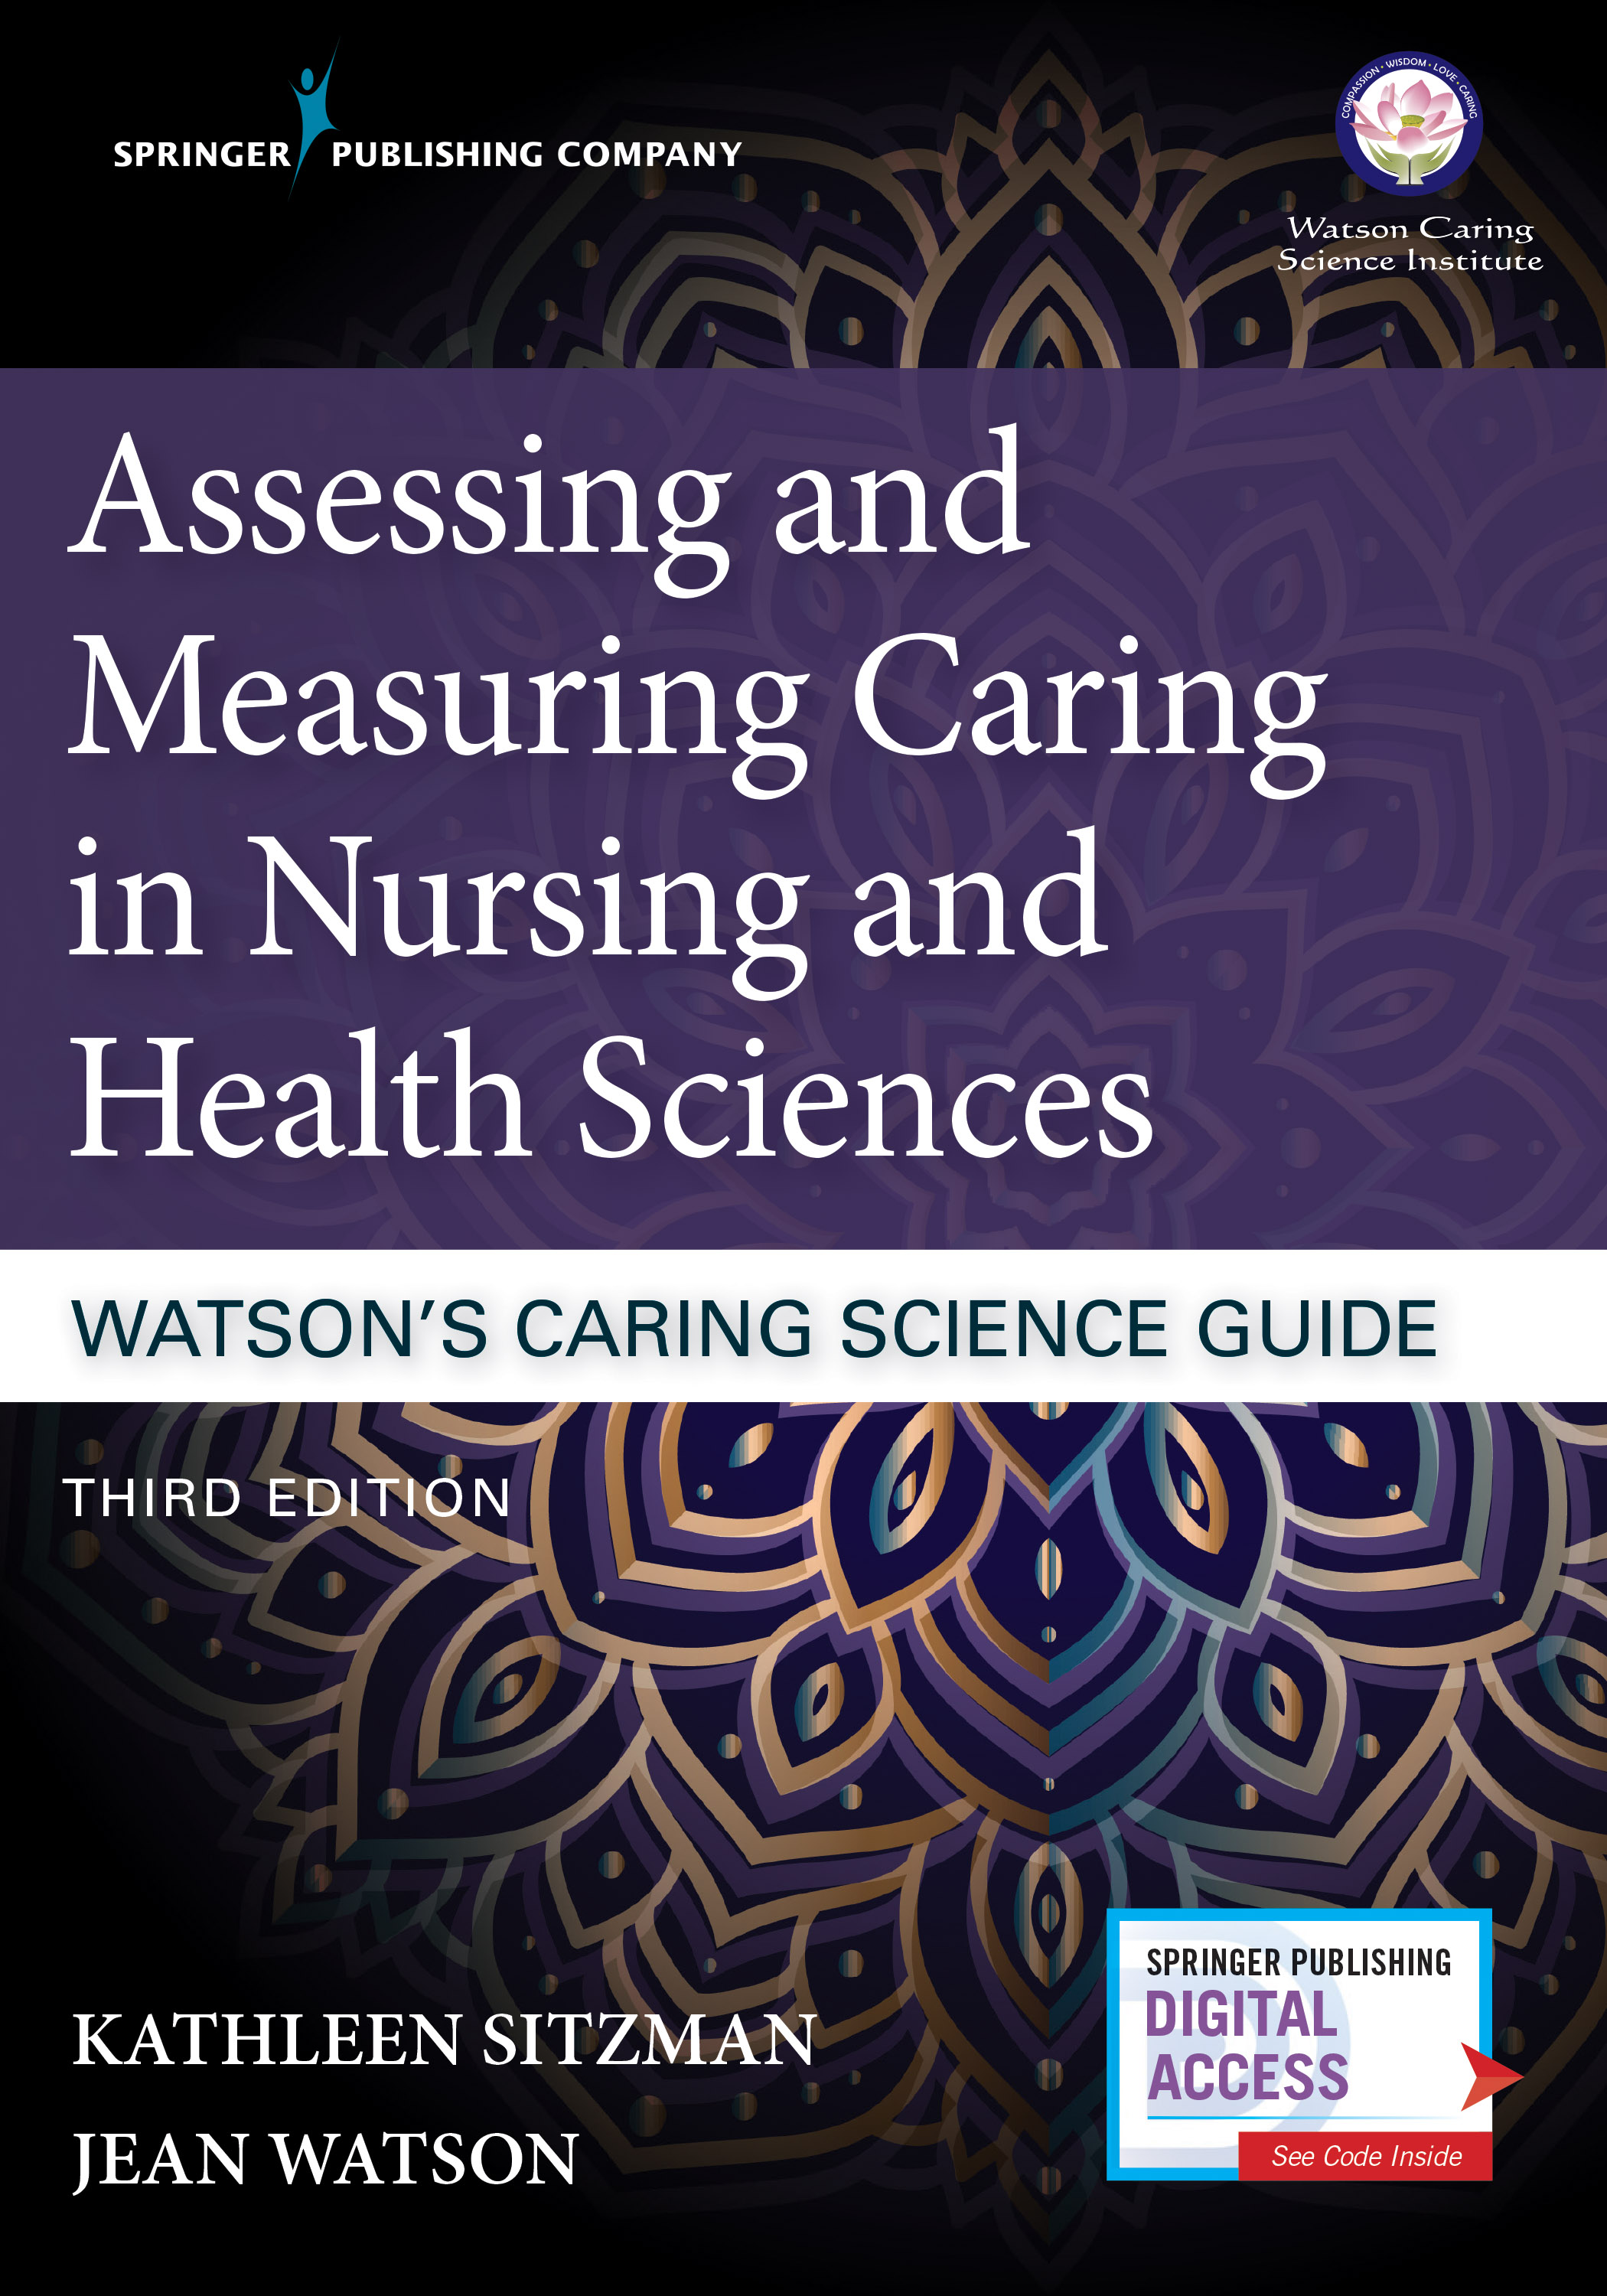 Assessing and Measuring Caring in Nursing and Health Sciences - TOOLS FOR FACILITATING CARING SCIENCE RESEARCHThis book is full of validated tools (for example surveys and questionnaires) that caring science researchers can use to explore caring in a wide range of professional environments when working with peers, clients, client families, and leadership teams.Buy Now from Publisher (20% off Coupon Code: SPC20FS)Click HERE to download the Publisher's FlyerBuy Now from Amazon